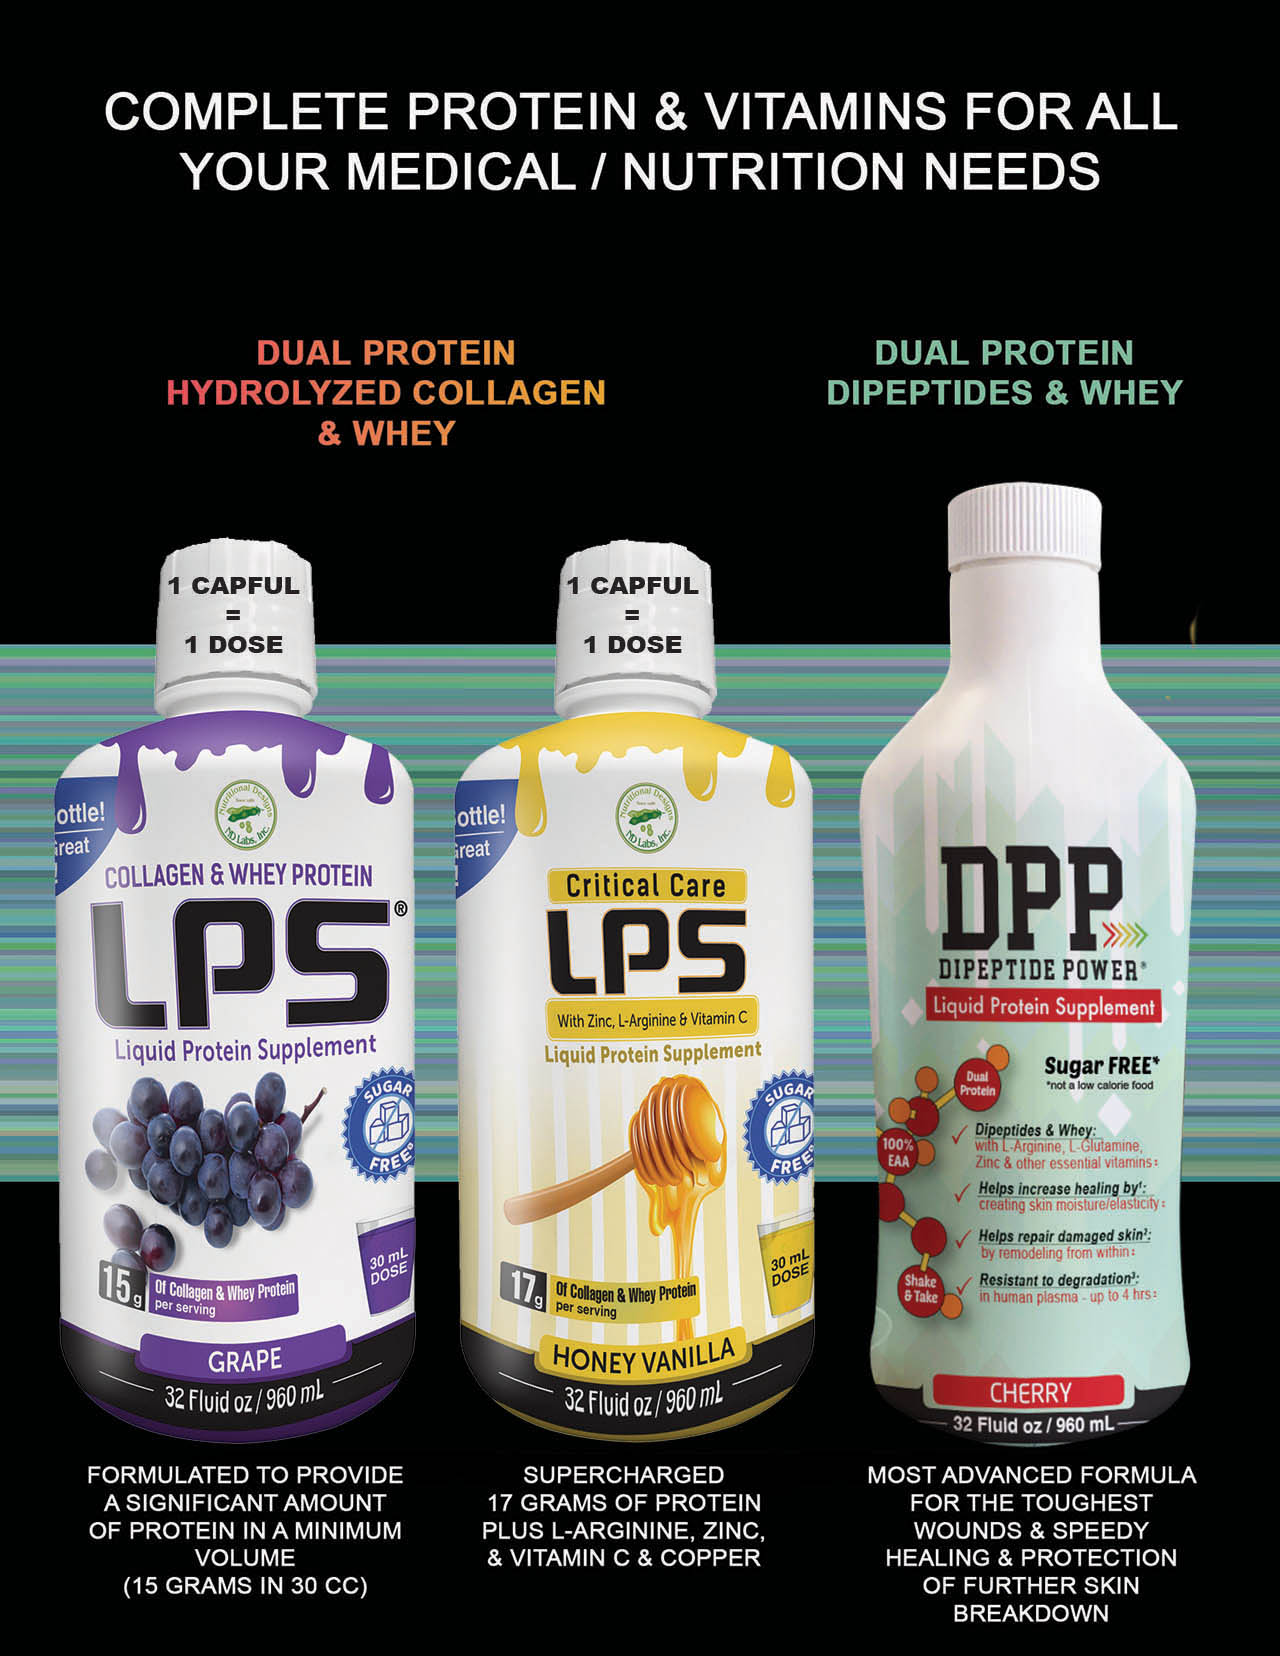 ND Labs All 3 Liquid Protein Types Information Sheet